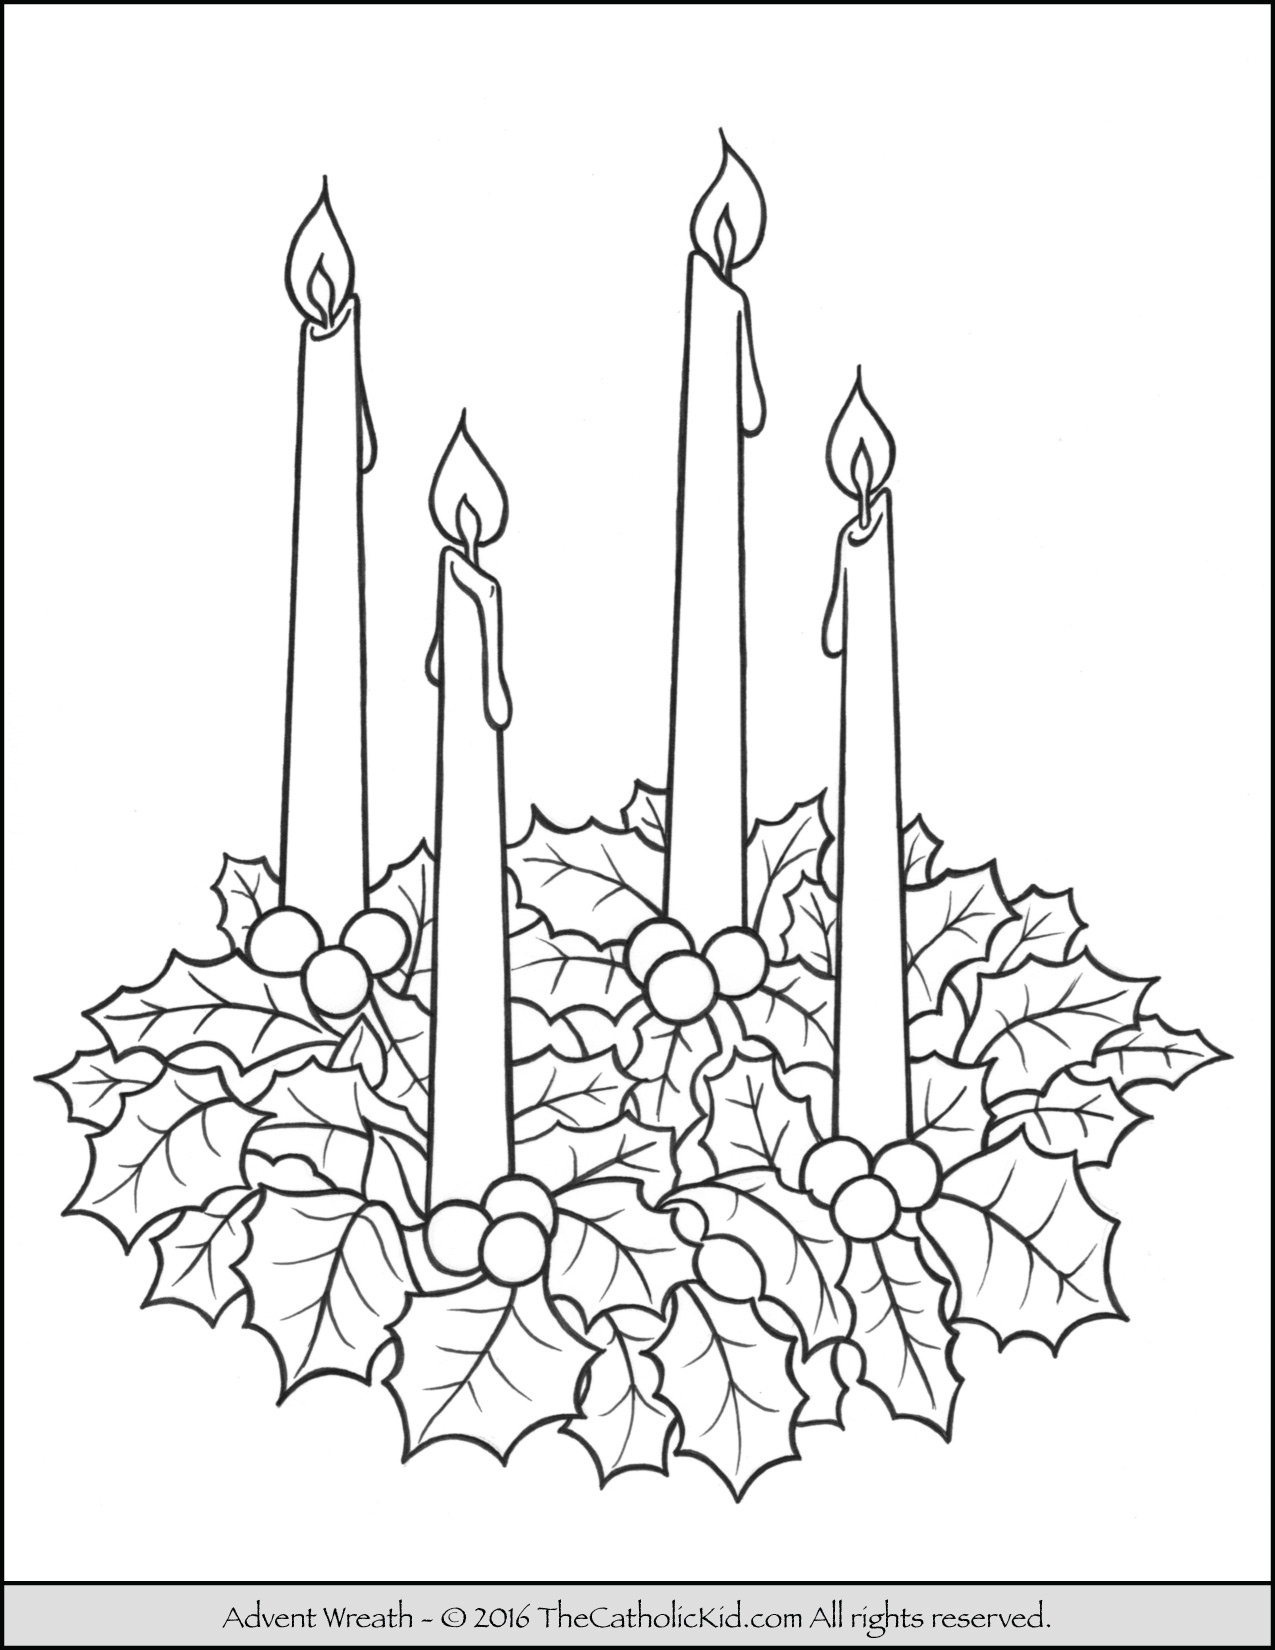 Advent Wreath Coloring Page - - Free Advent Wreath Printables